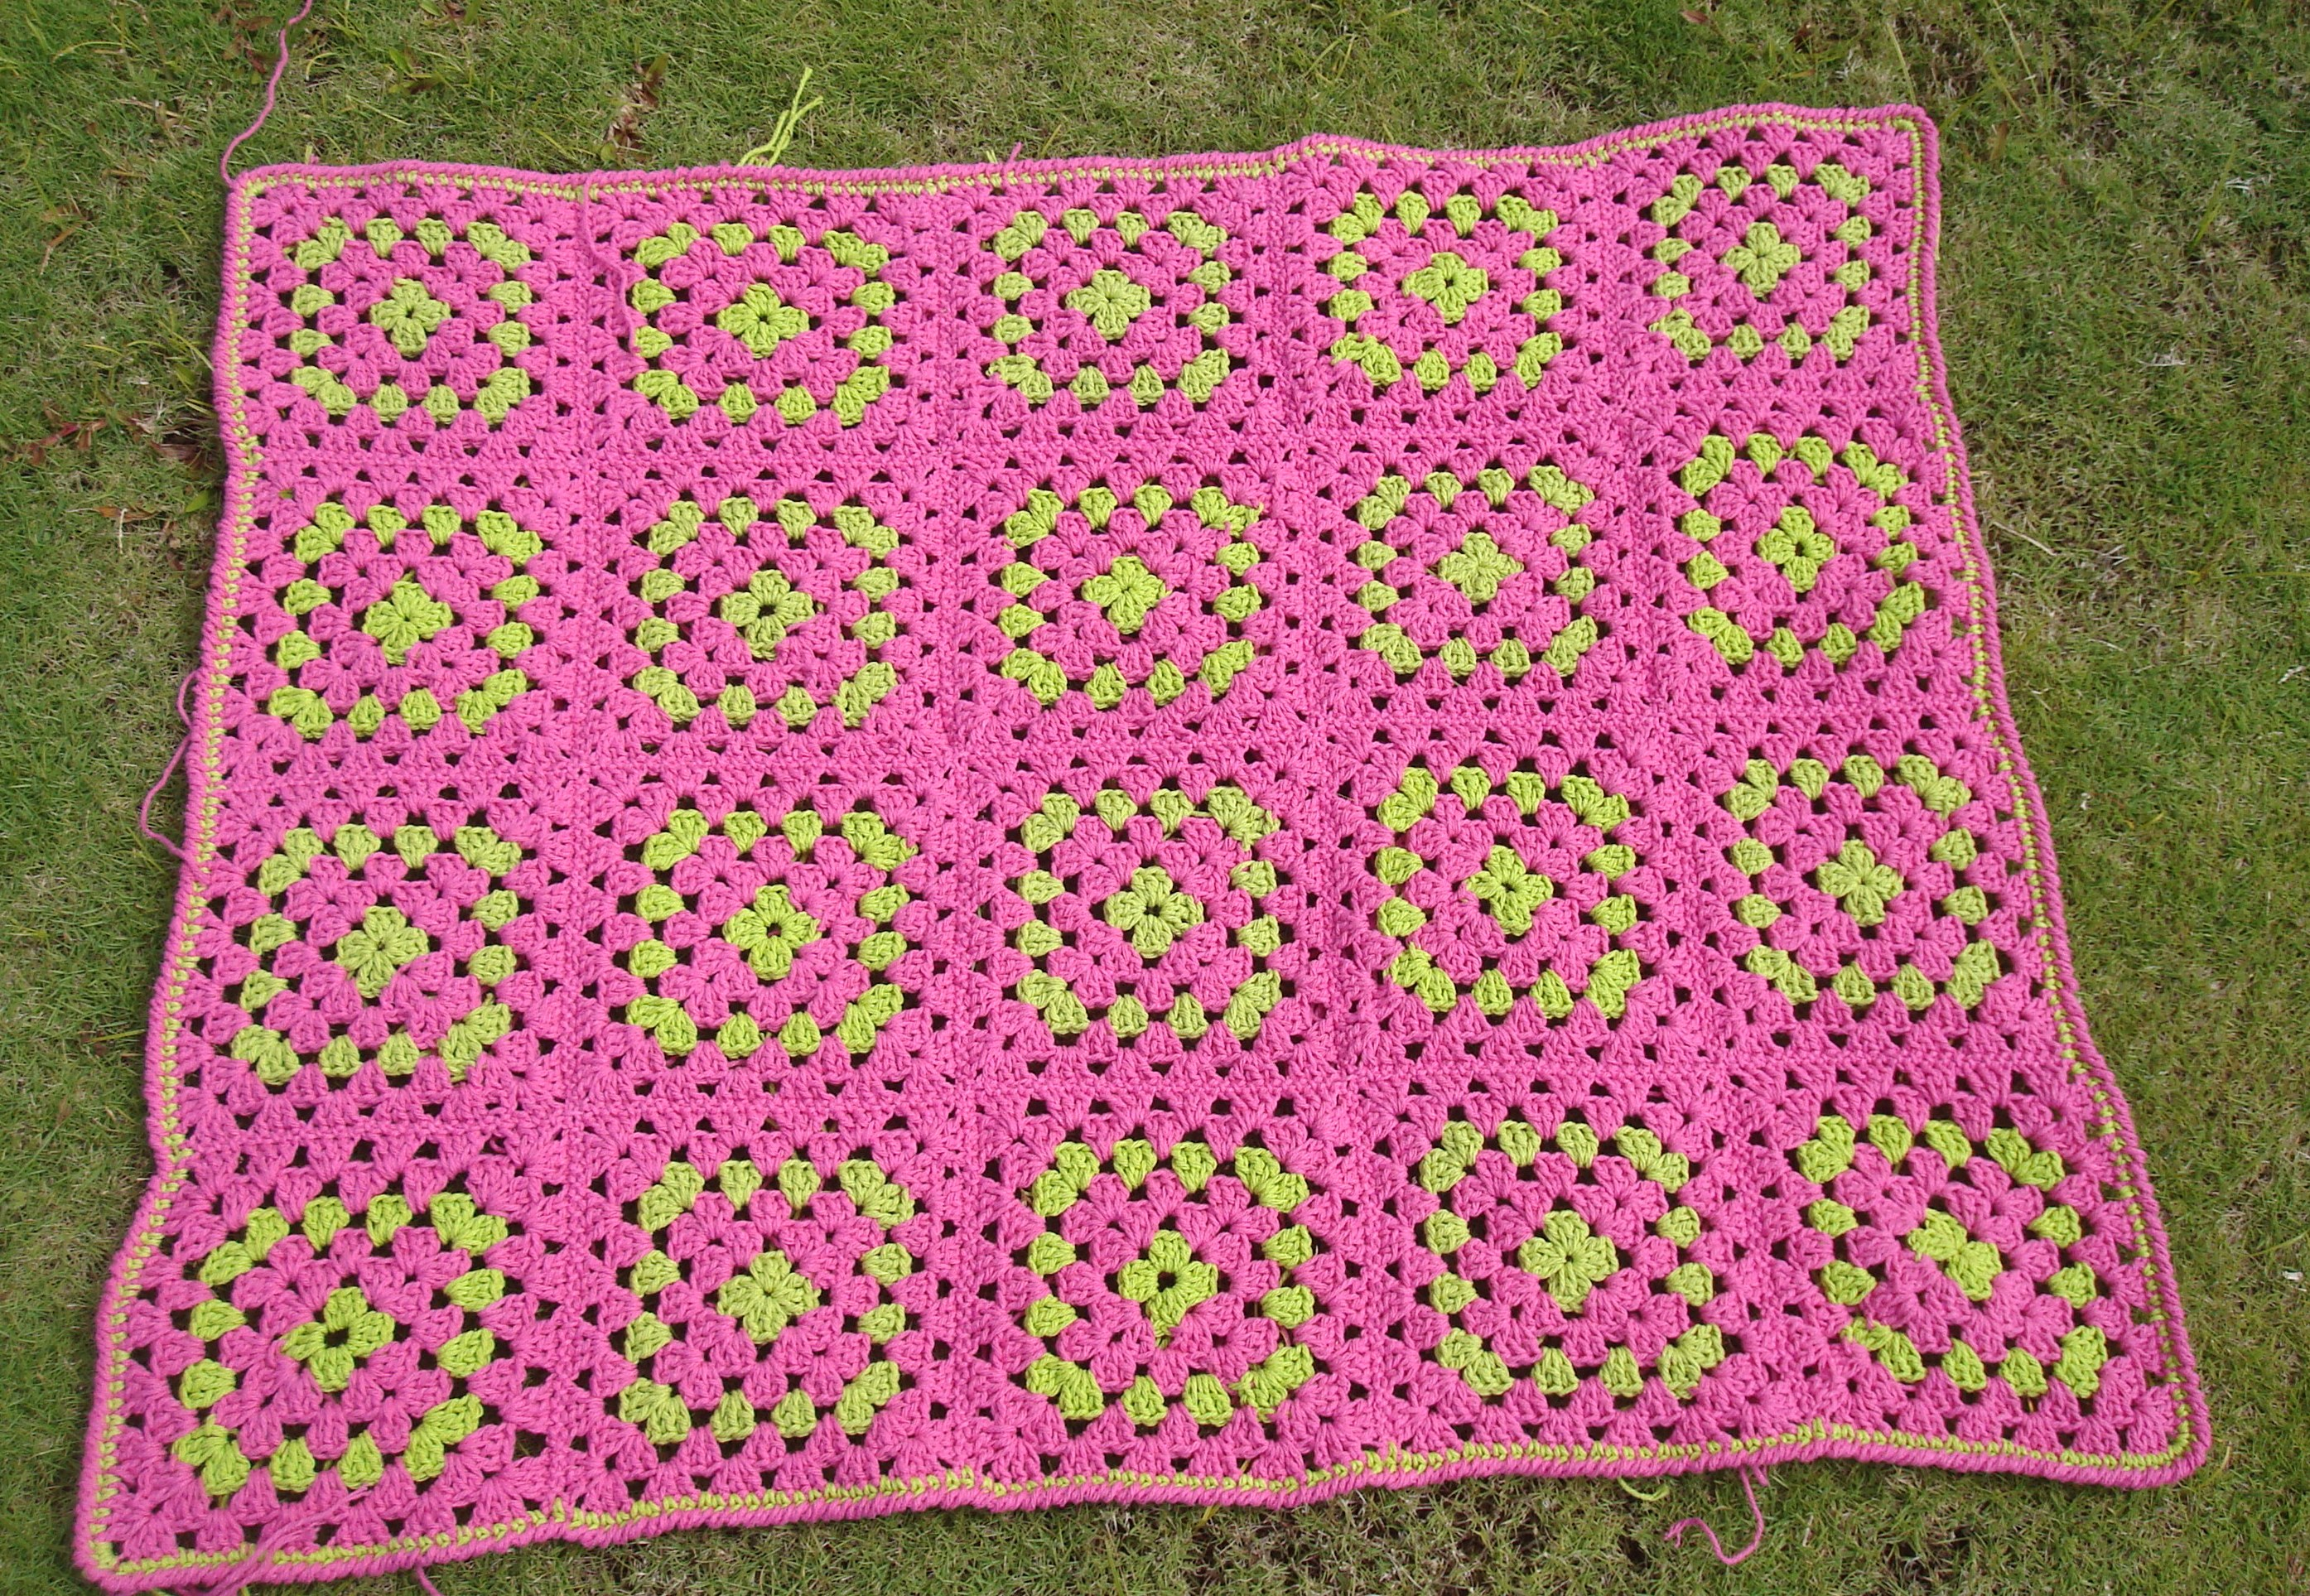 A Hastily Made Granny Square Baby Blanket Leads to Some Nice Refinements